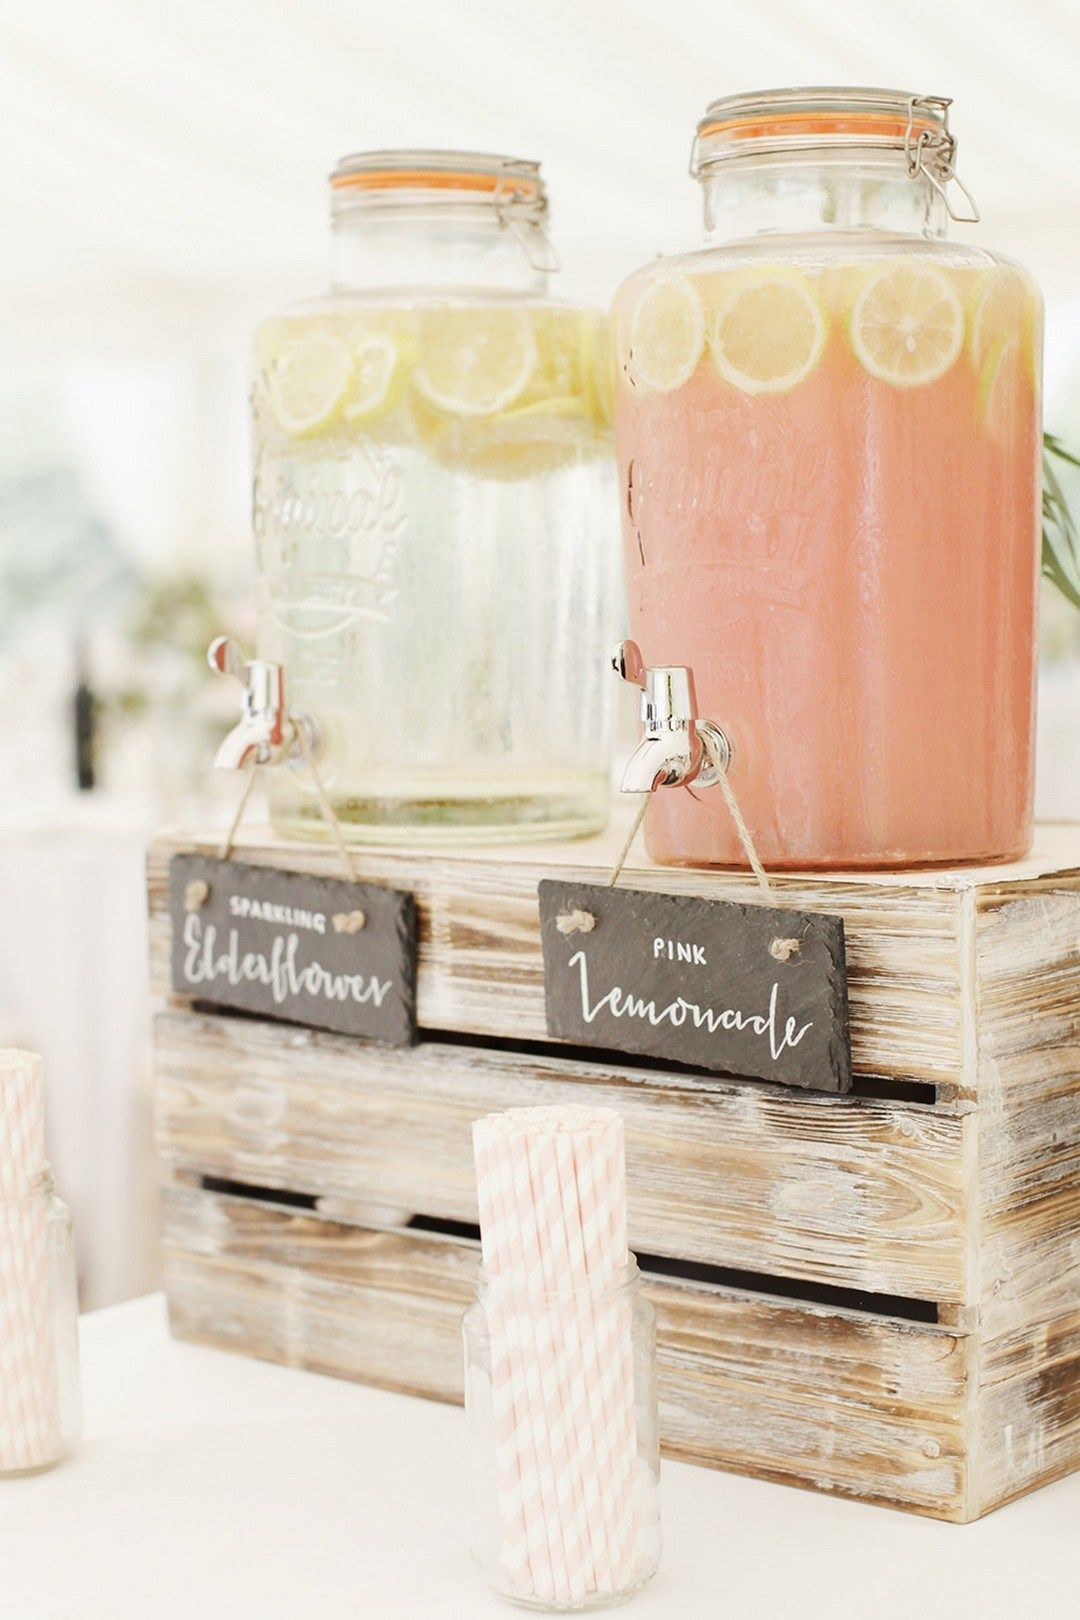 Diy wedding ideas 99 ways to save budget for your big day 94 do diy wedding ideas 99 ways to save budget for your big day 94 solutioingenieria Image collections